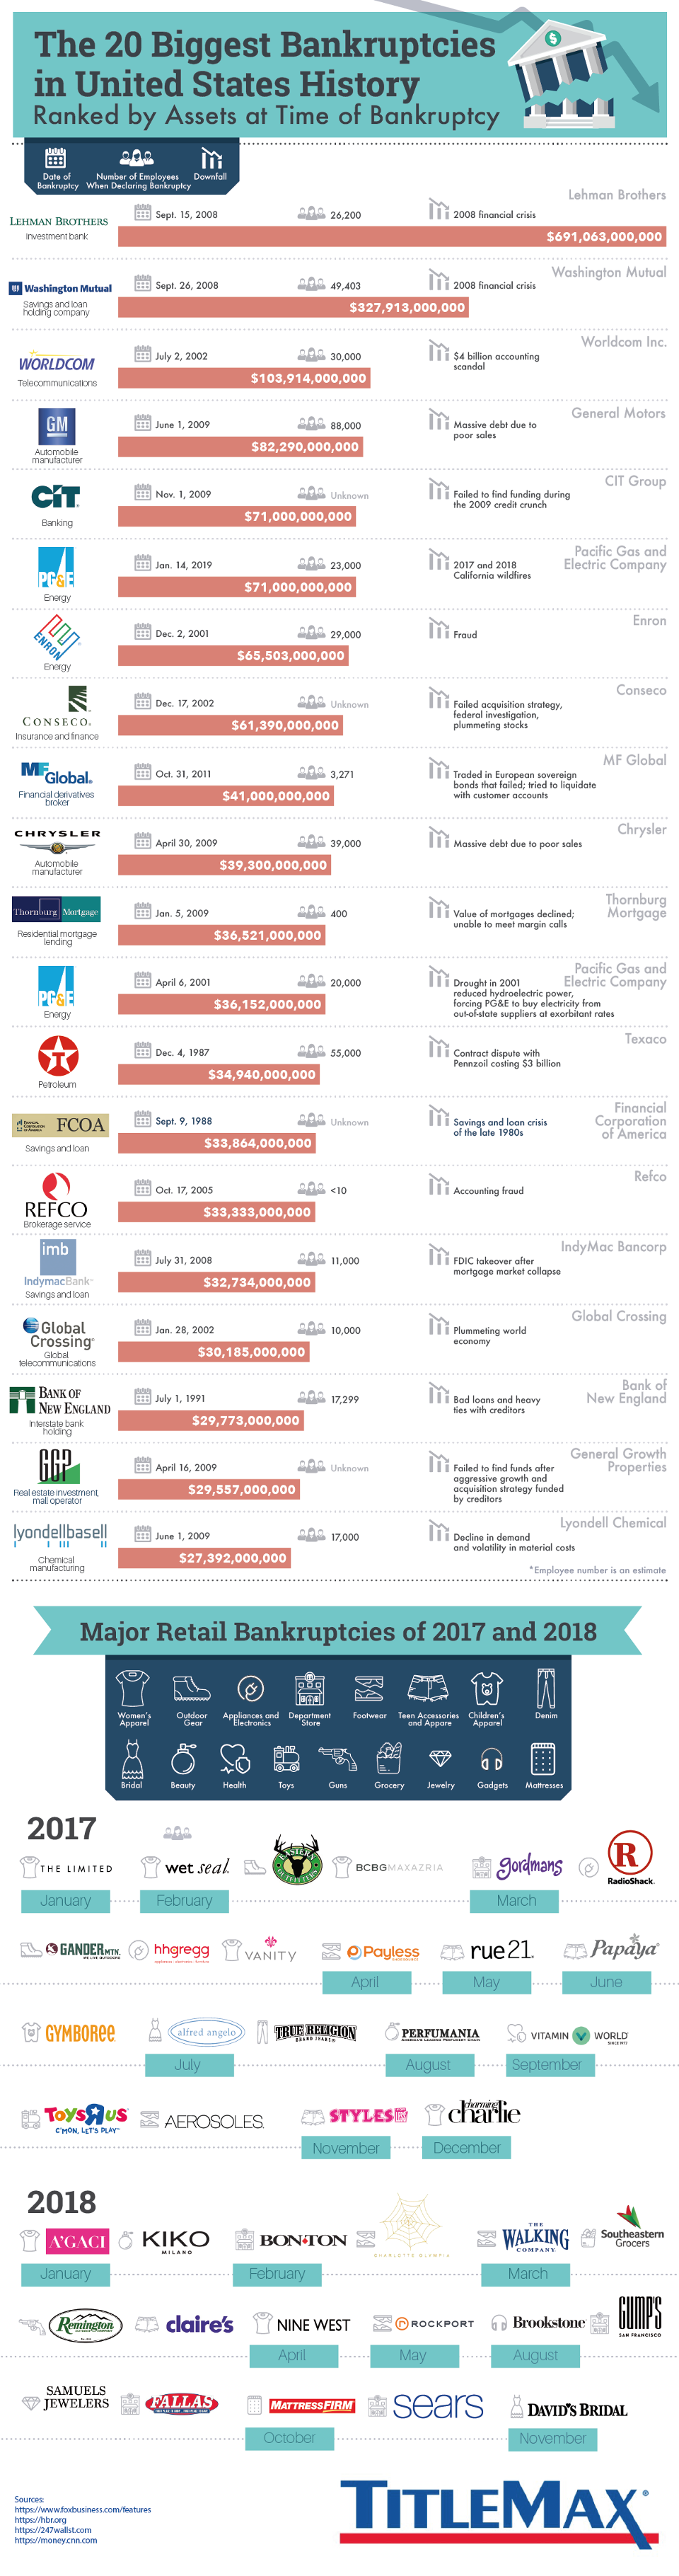 Bankruptcy Legends: The Biggest 20 Disasters in the History of USA - Infographic